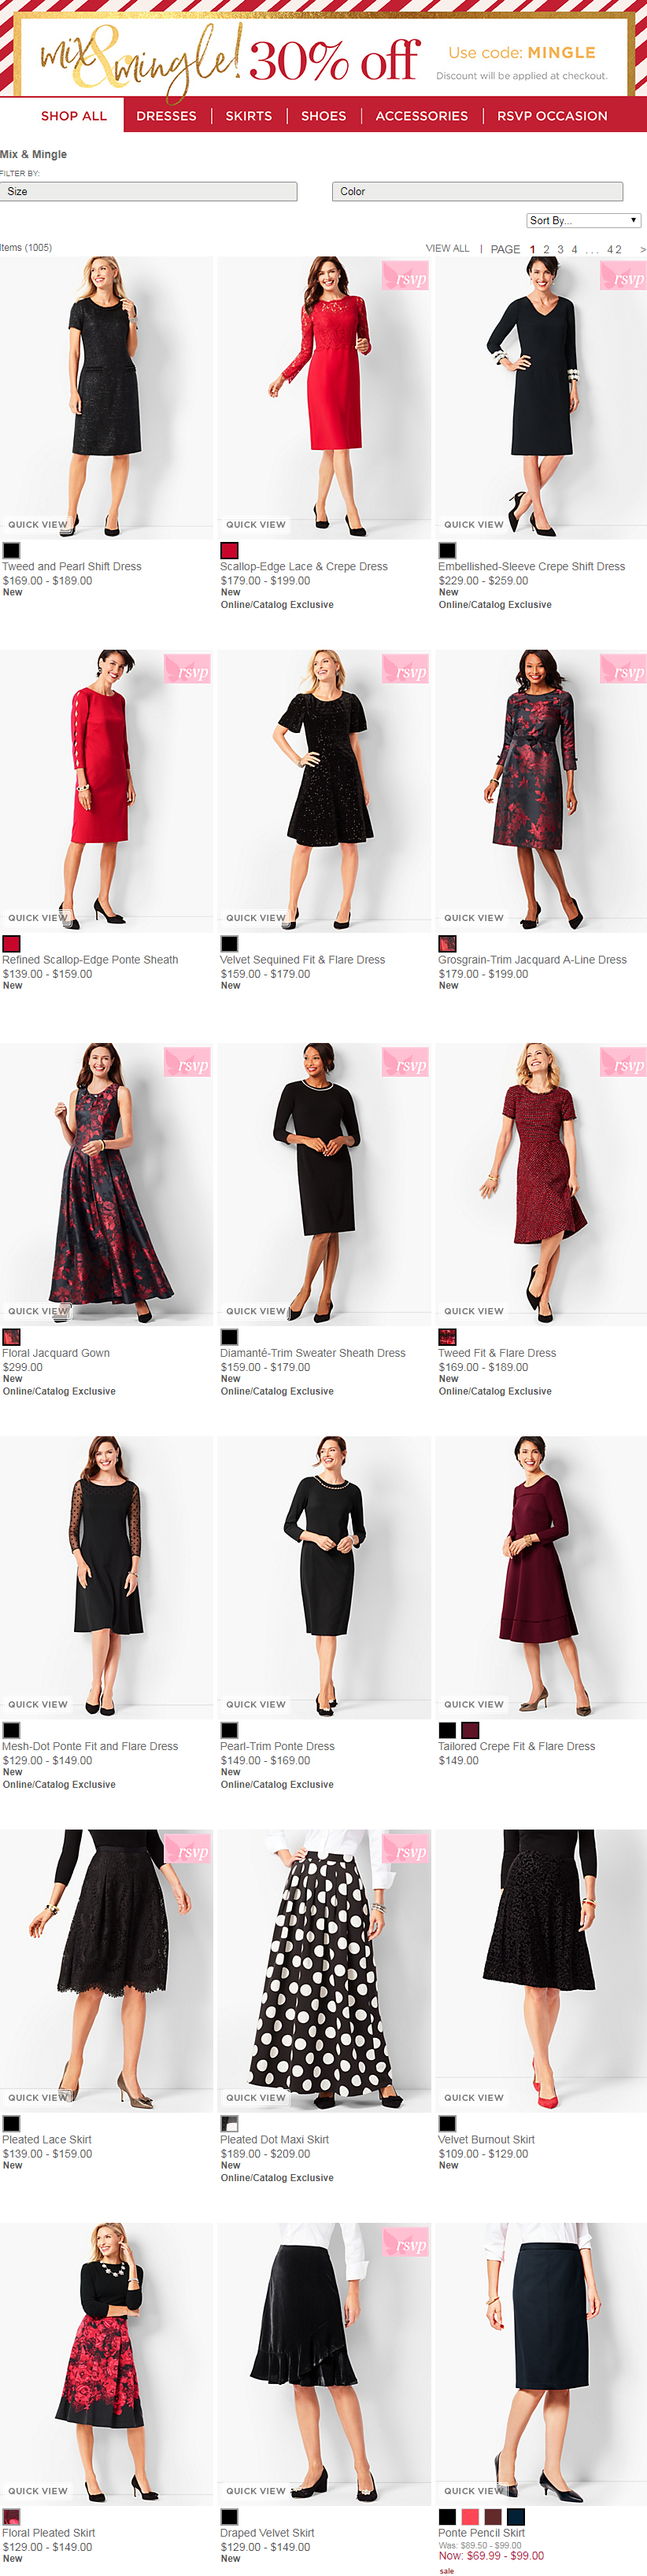 Last chance to buy these items at the best prices. This selection of modest fashion items are gone, ...